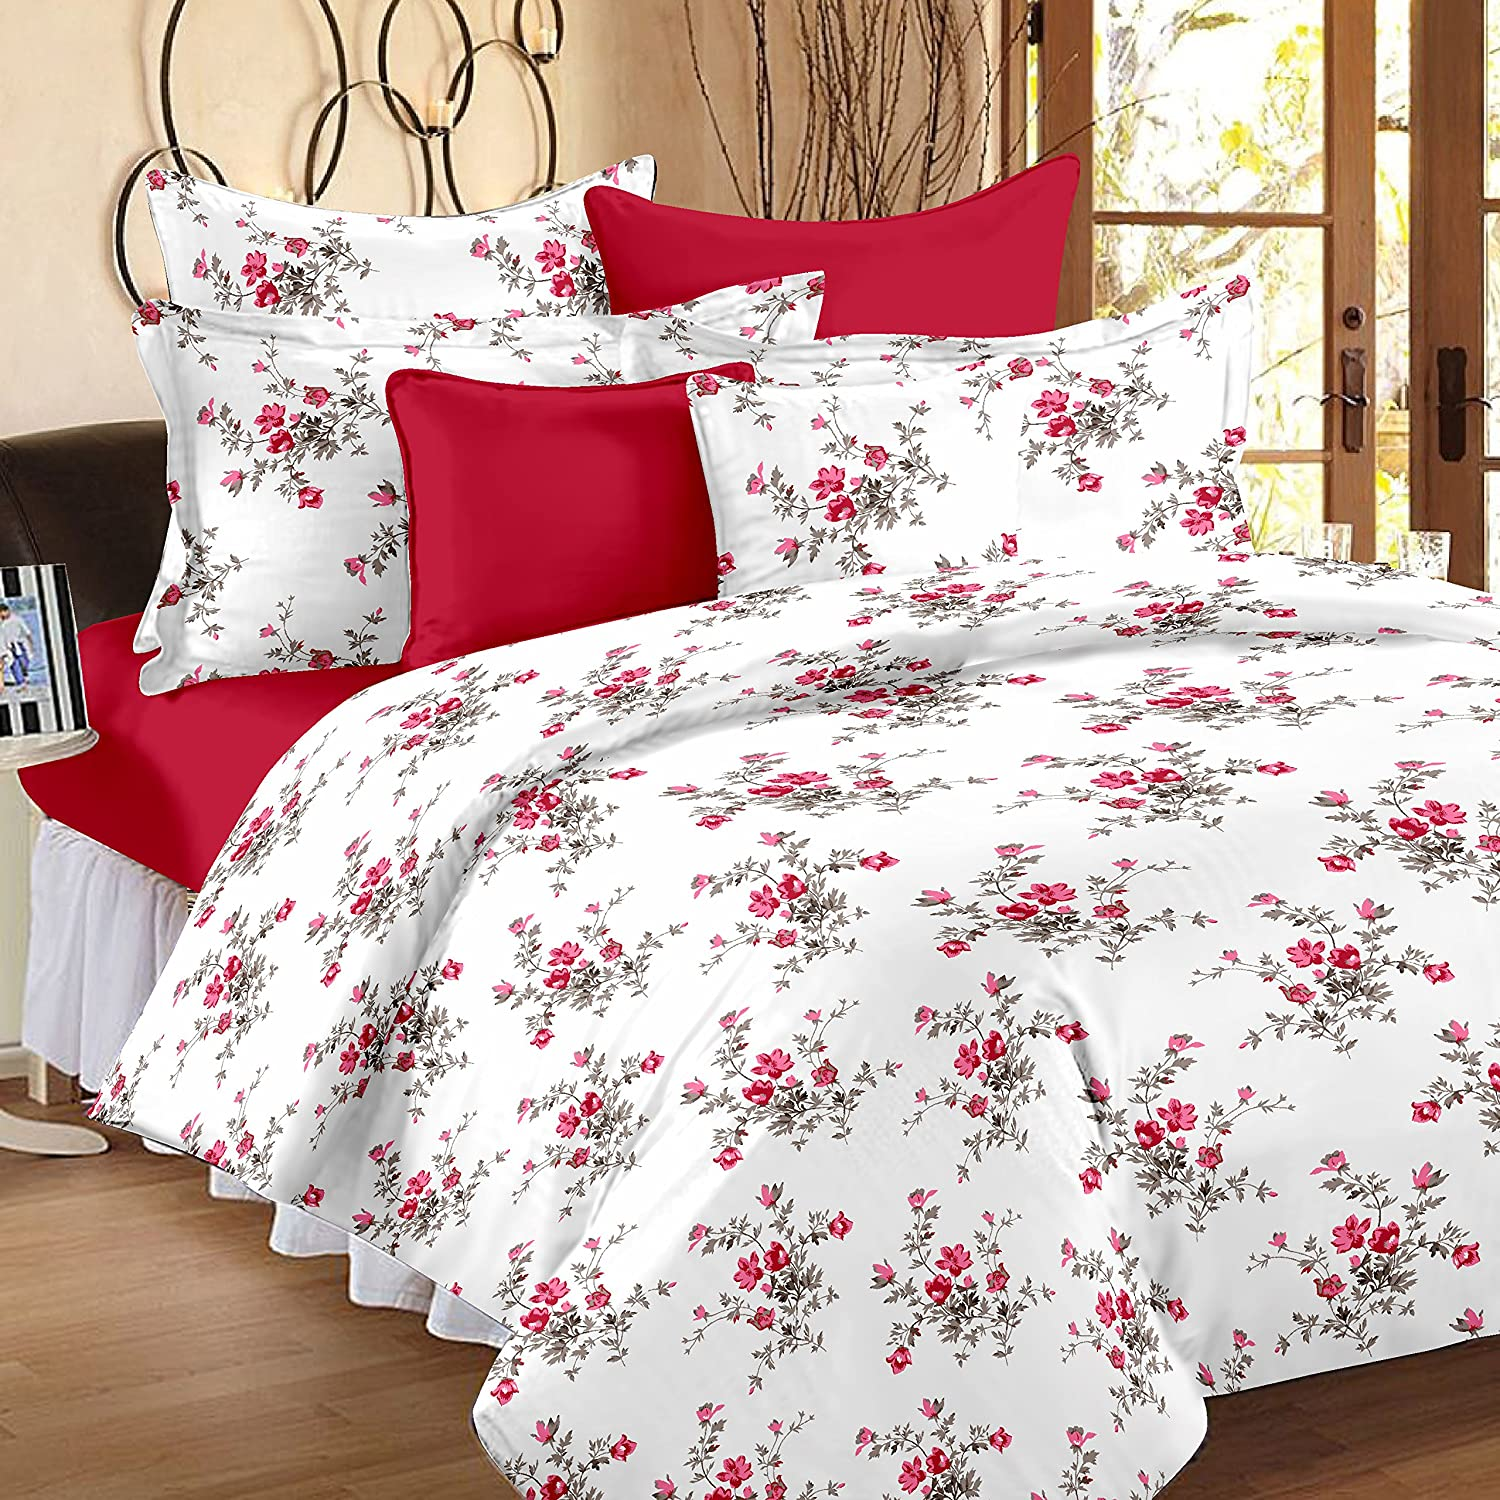 Bed Sheet Cover